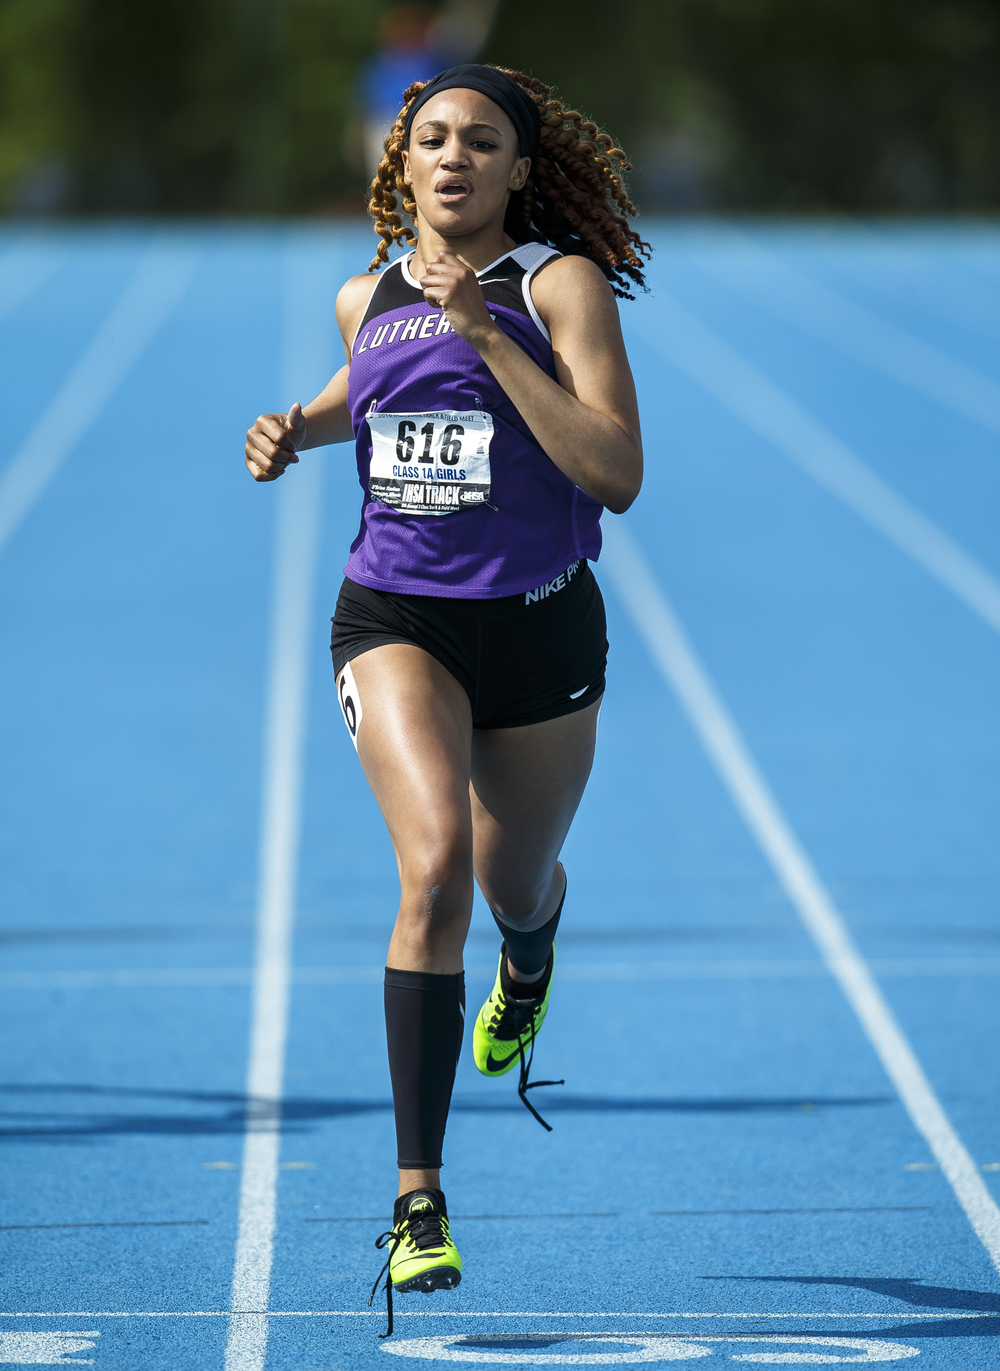 Rockford Lutheran's Courtney Sockwell comes into the finish line to win the Class 1A 200-Meter Dash, with her shoelaces untied, with a time of 25.06 during the 2016 IHSA Girls State Track and Field Meet at O'Brien Stadium, Saturday, May 21, 2016, in Charleston, Ill. Justin L. Fowler/The State Journal-Register